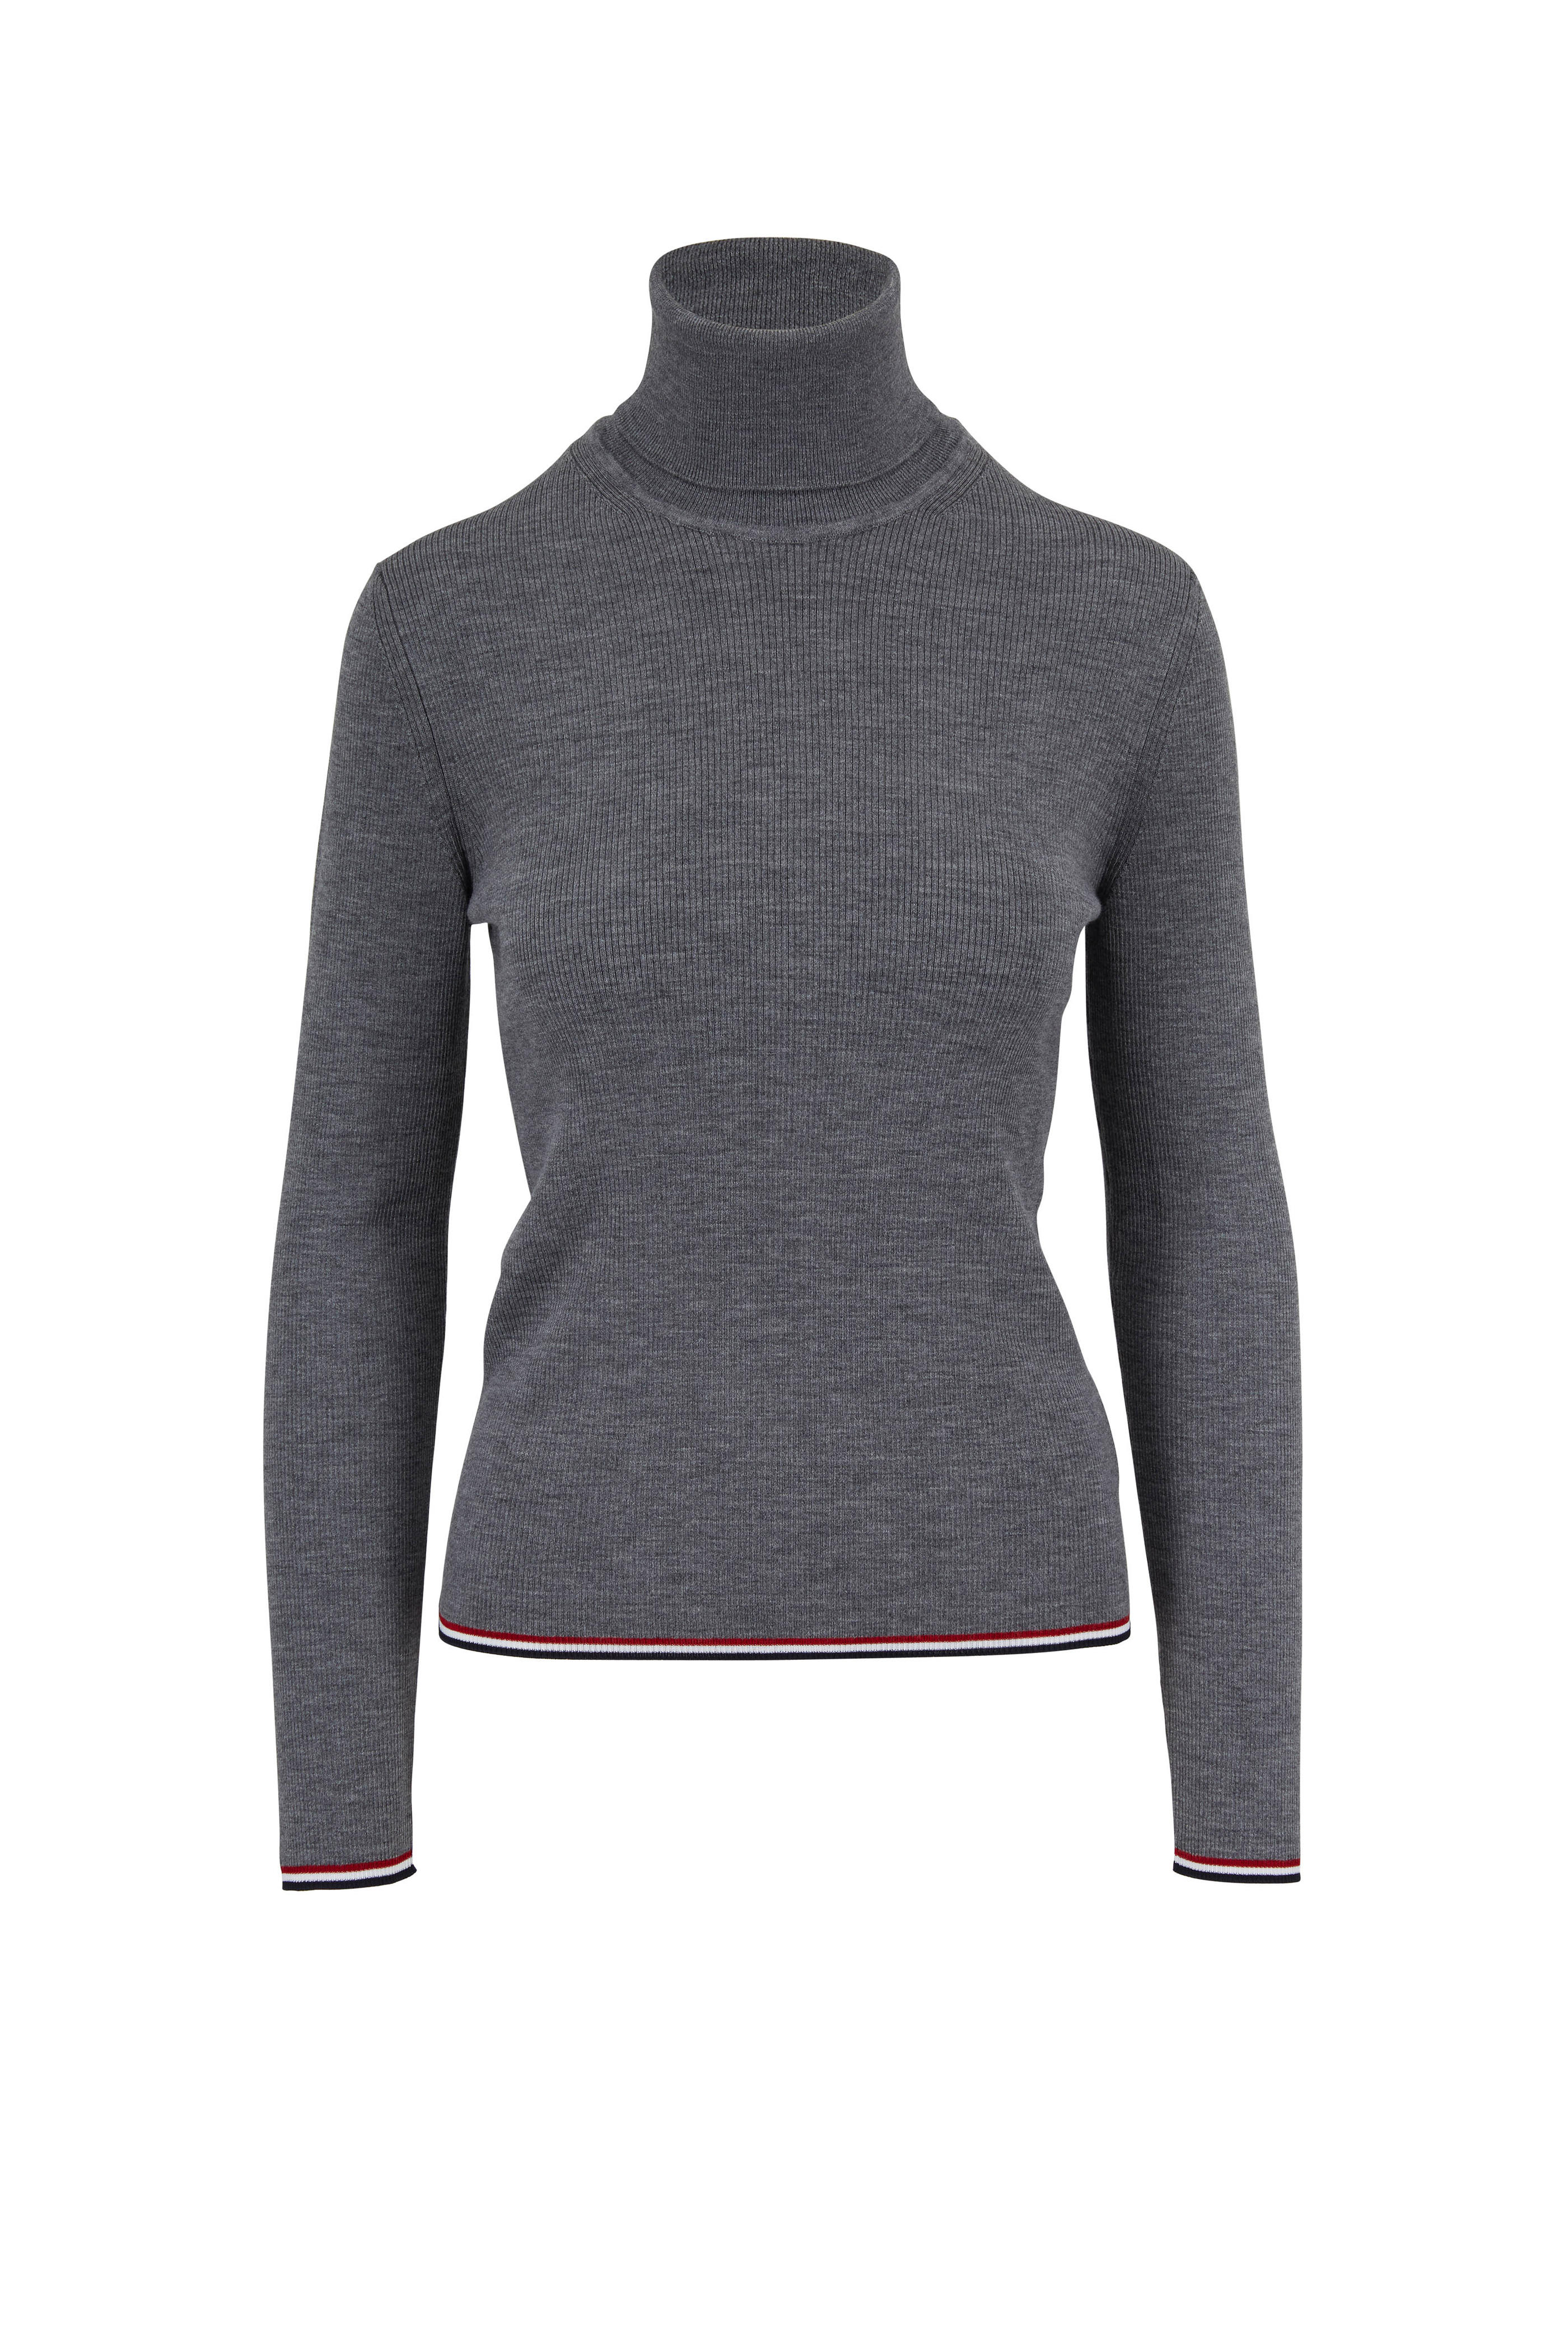 bf7c2a6f91 Thom Browne - Charcoal Gray Ribbed Wool Contrast Trim Turtleneck ...